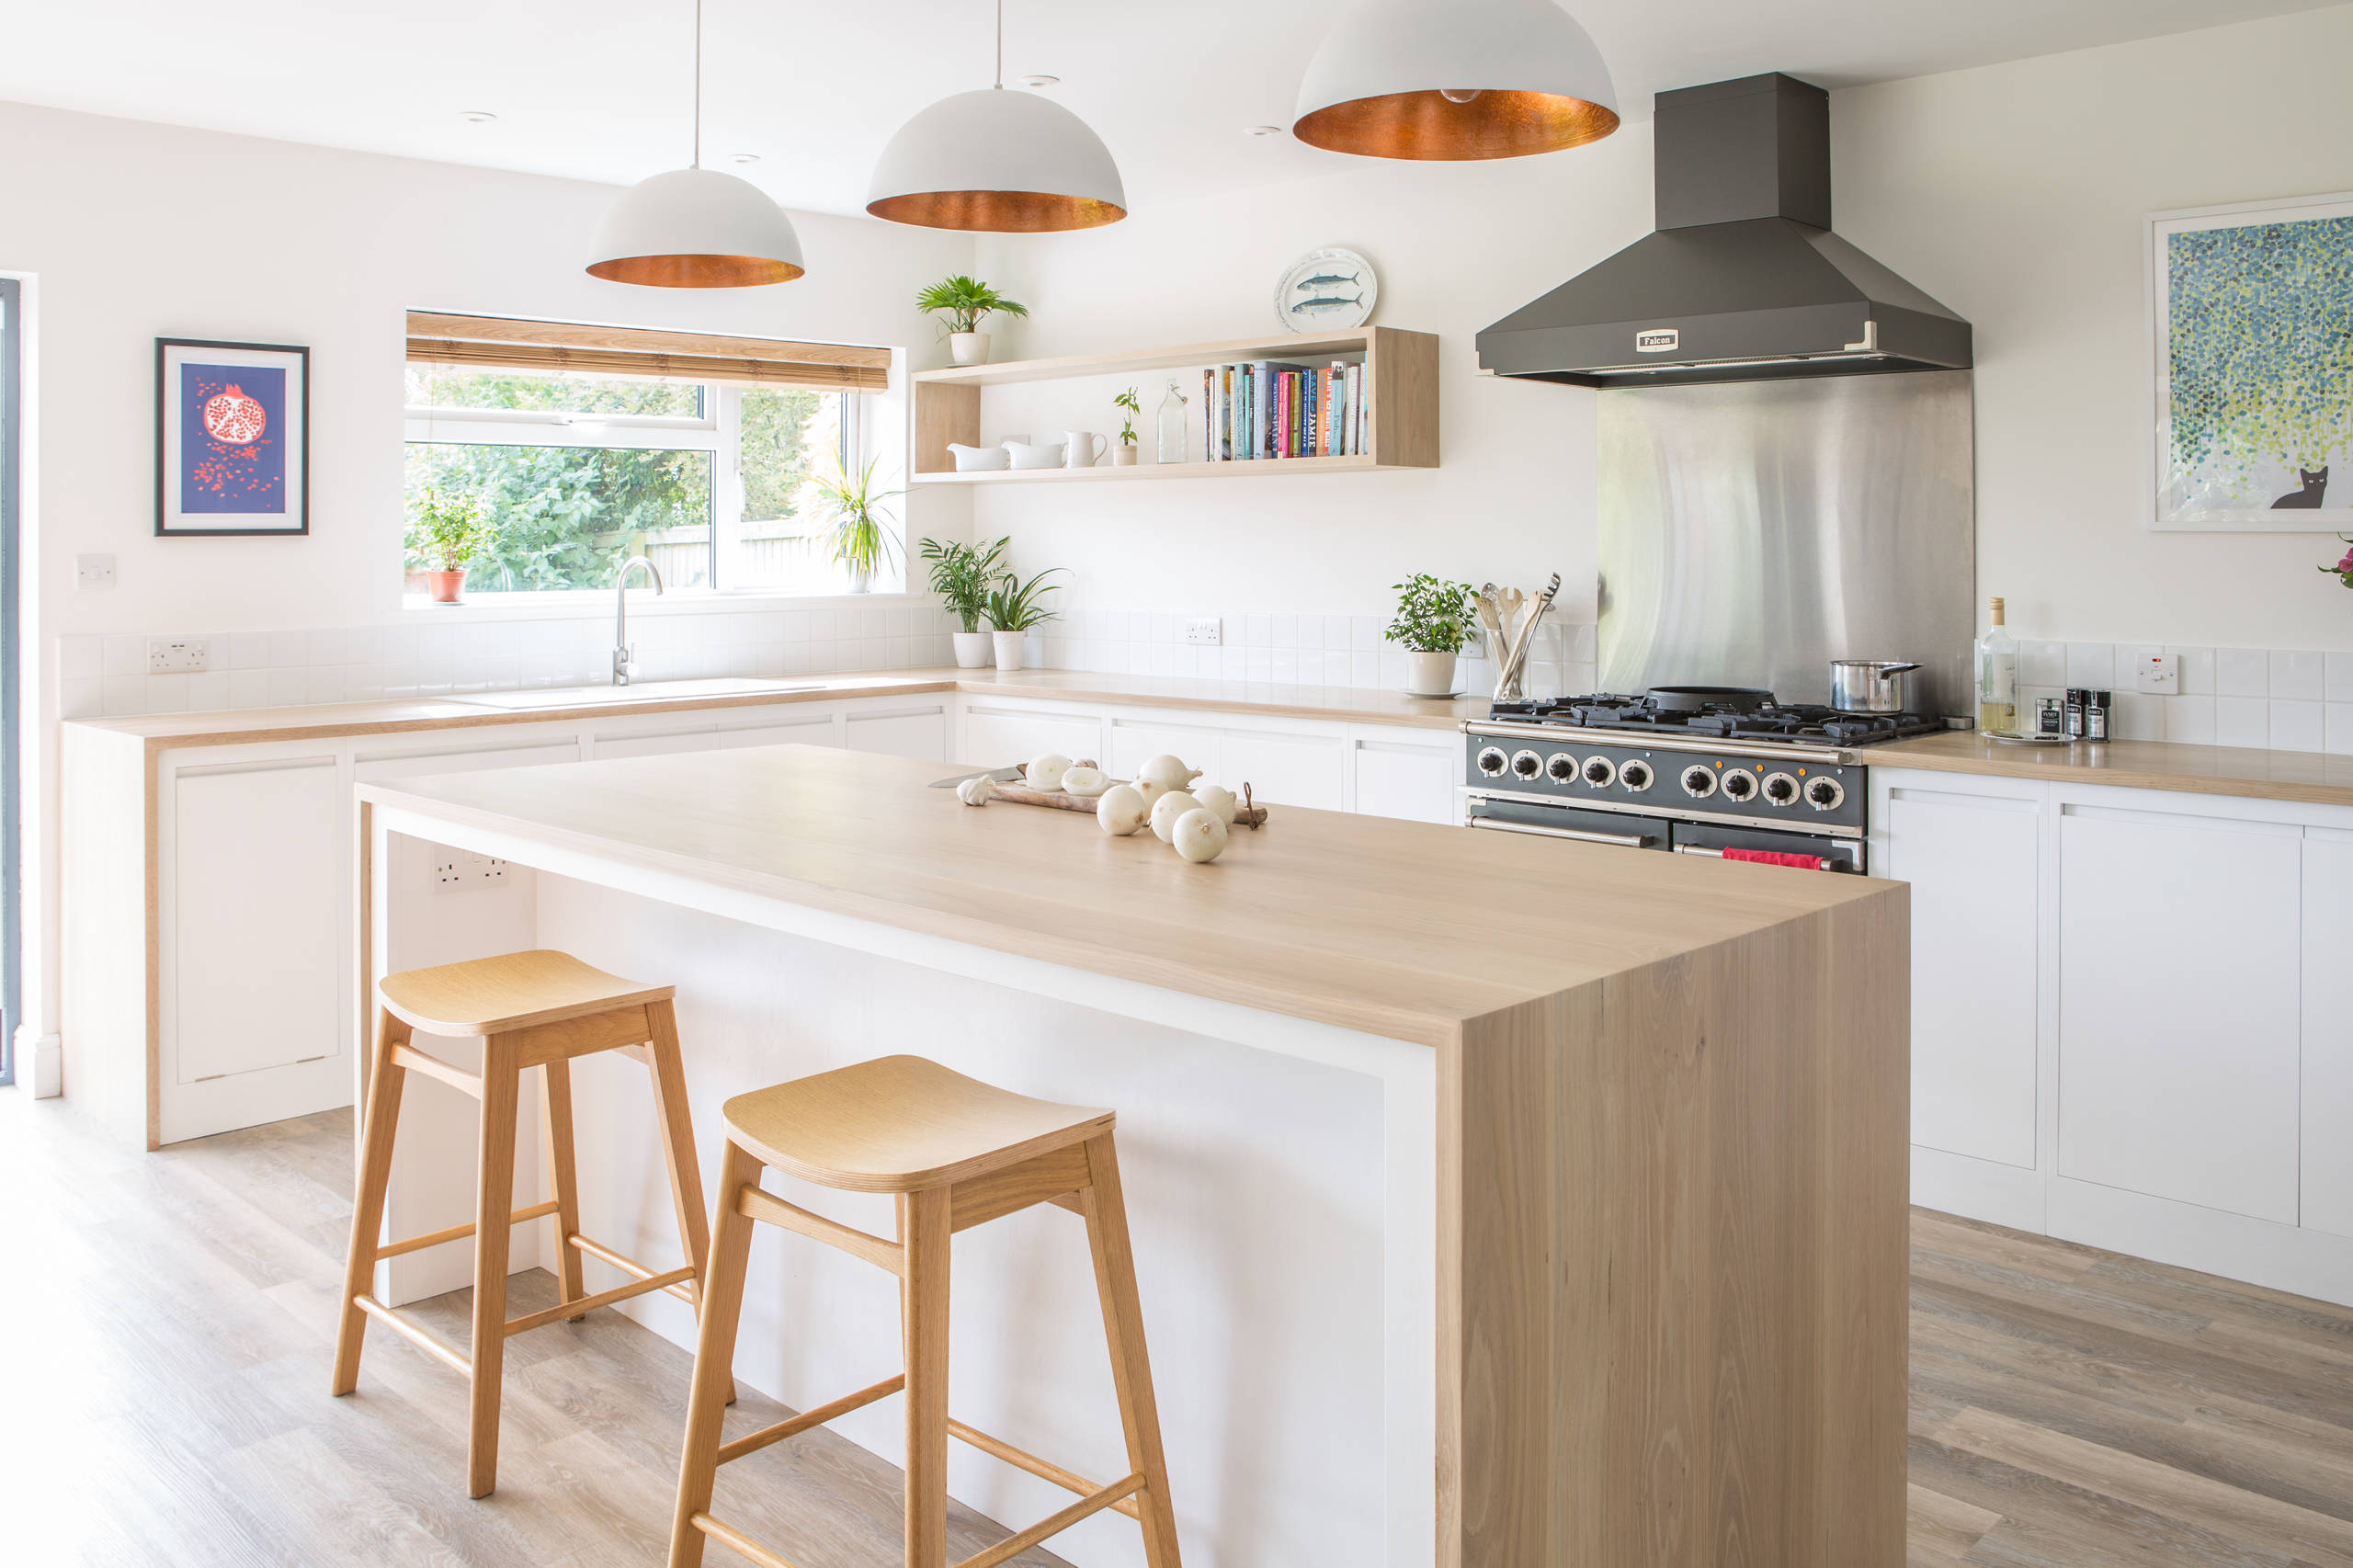 Unbelievable Scandinavian Kitchen Designs That Will Make Your Jaw Drop